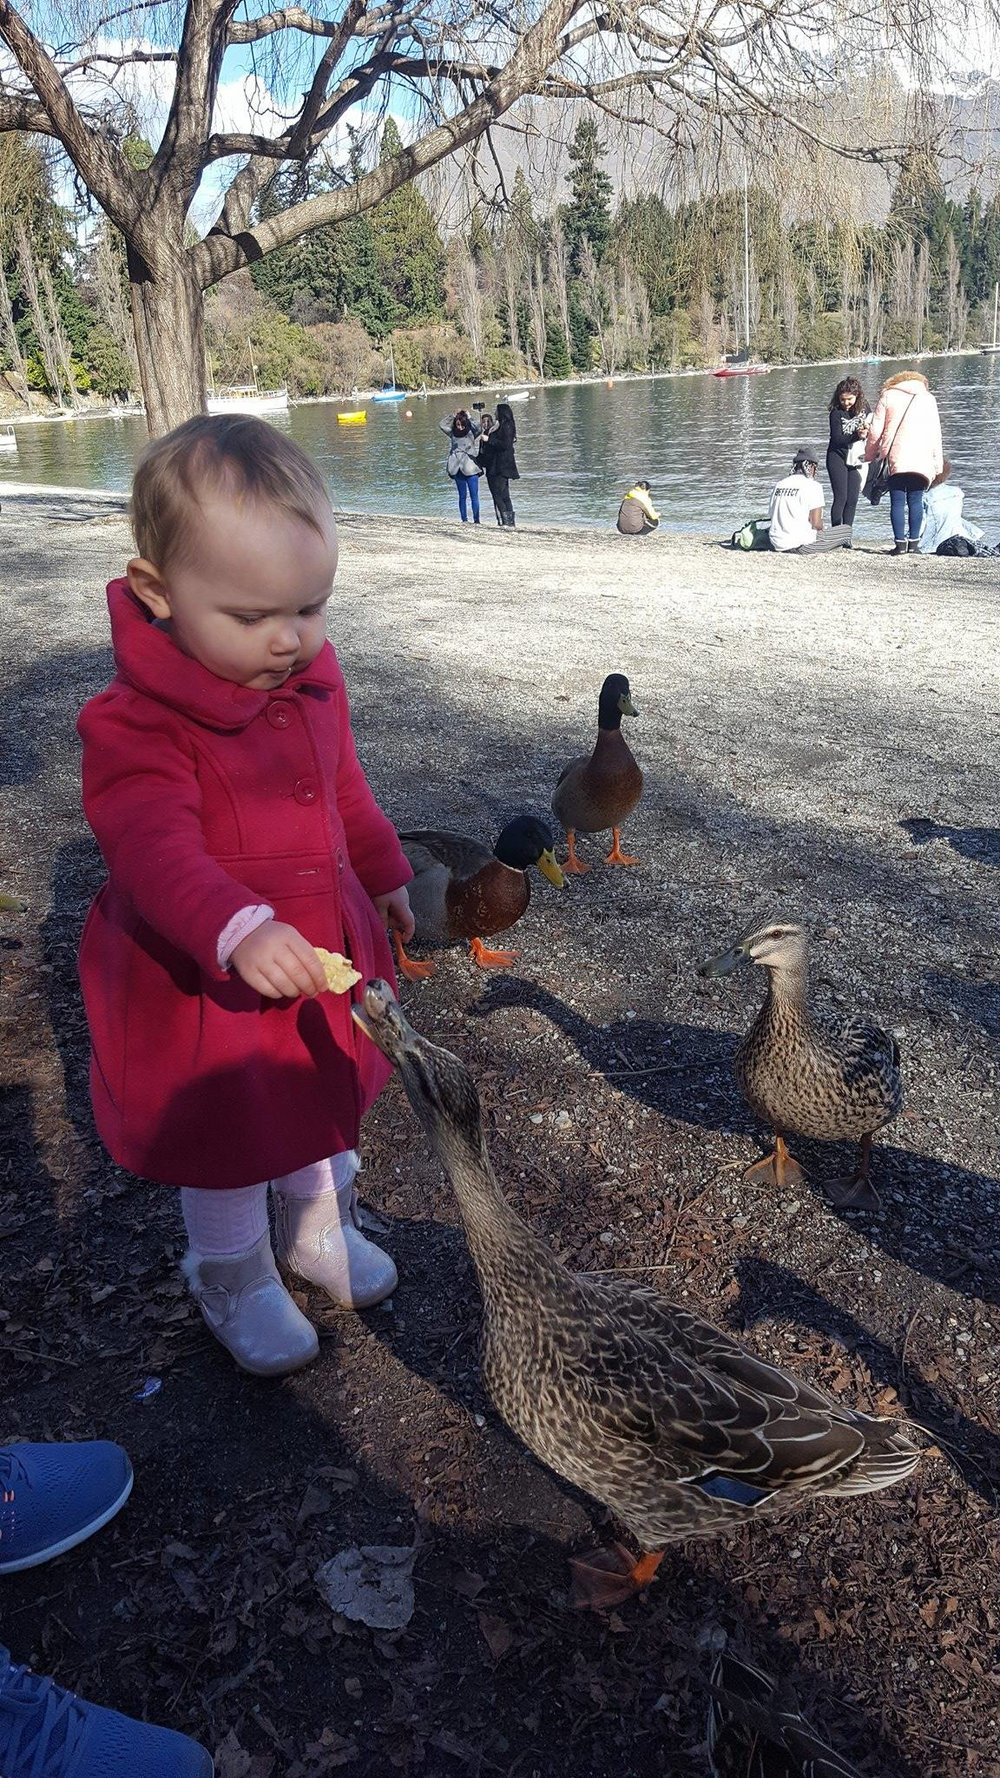 Feeding ducks is fun anywhere in the world.